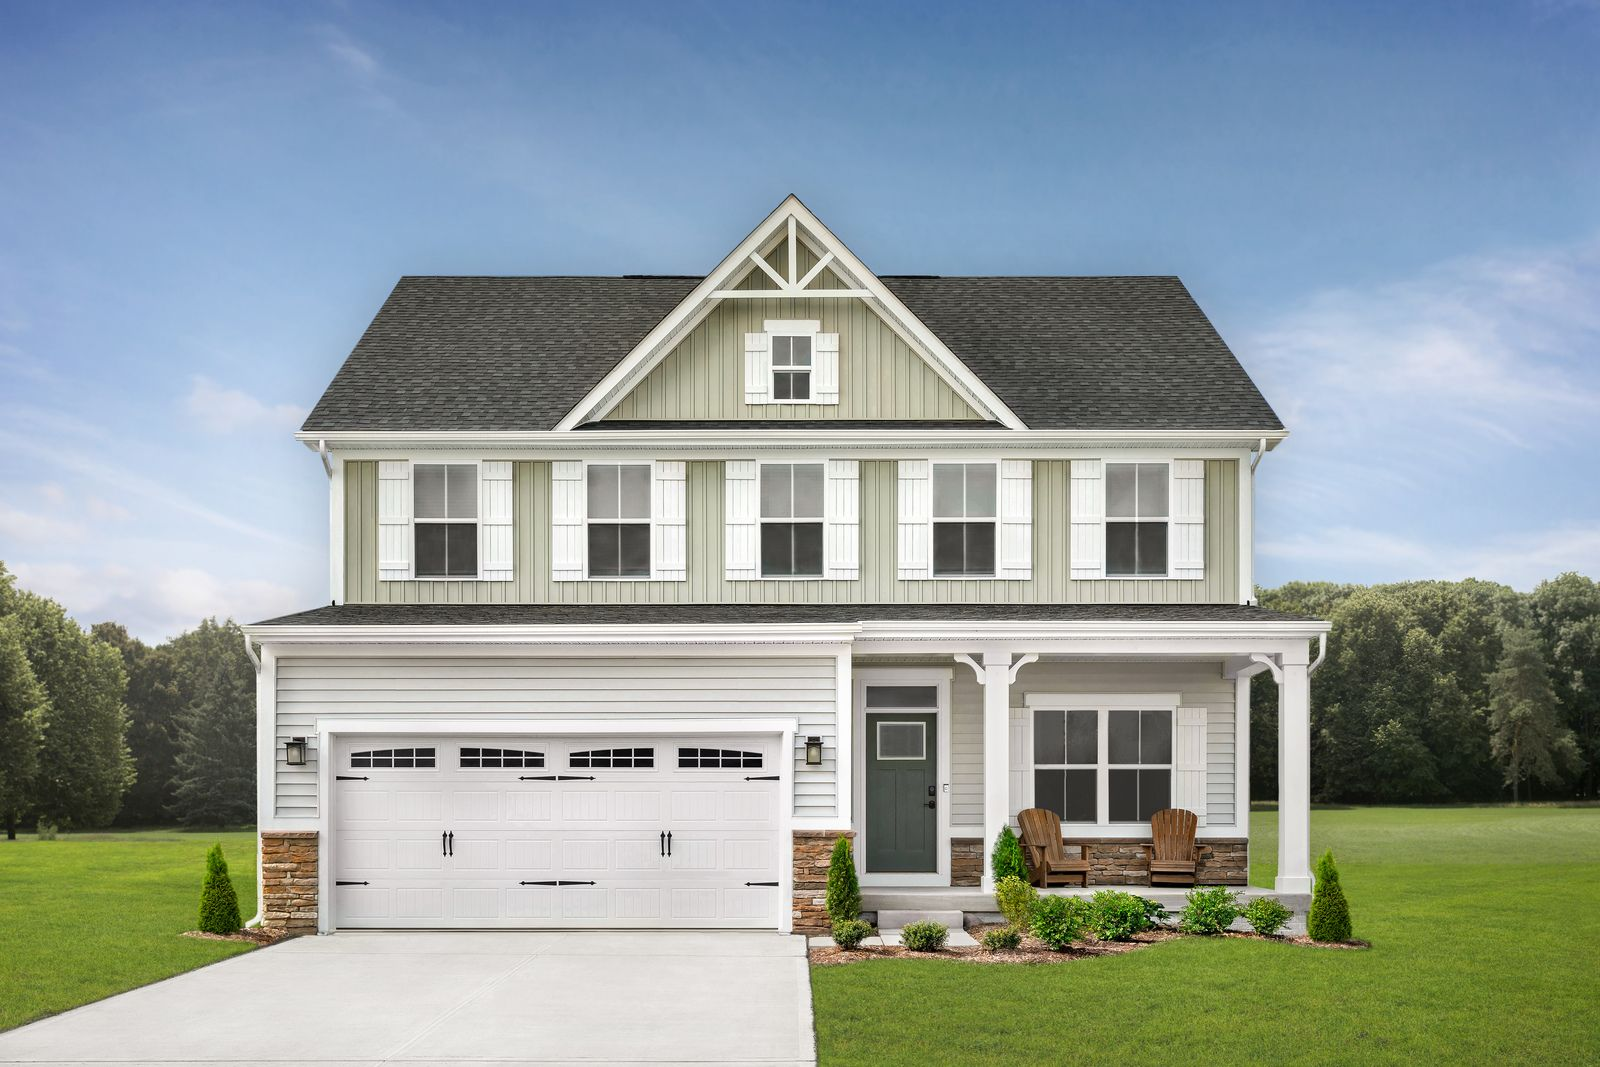 Tree-lined homes walking distance to shopping & dining in Fuquay-Varina